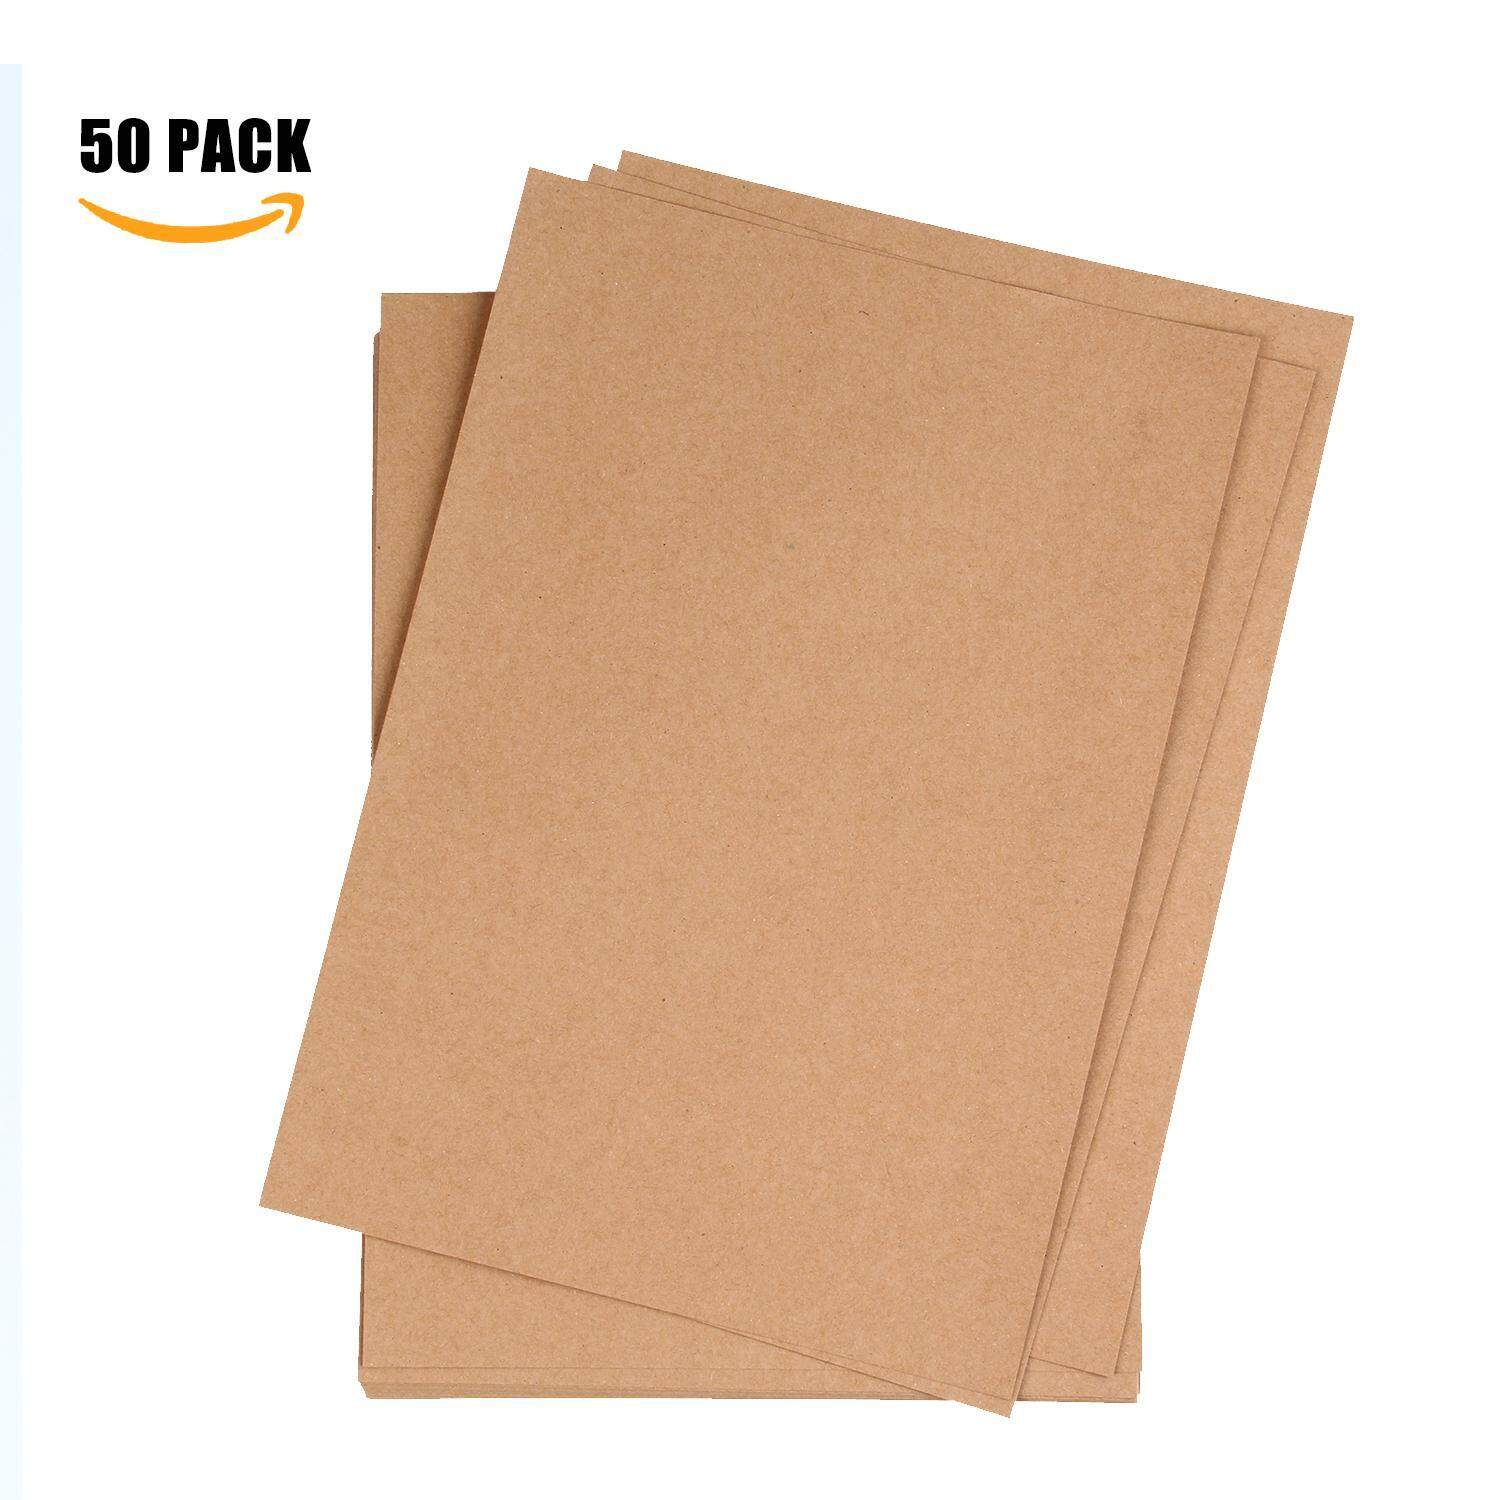 Foonee Kraft Paper, Pack Of 50 Natural Packing Wrapping Kraft Paper - 8.26x11.69inch - intl